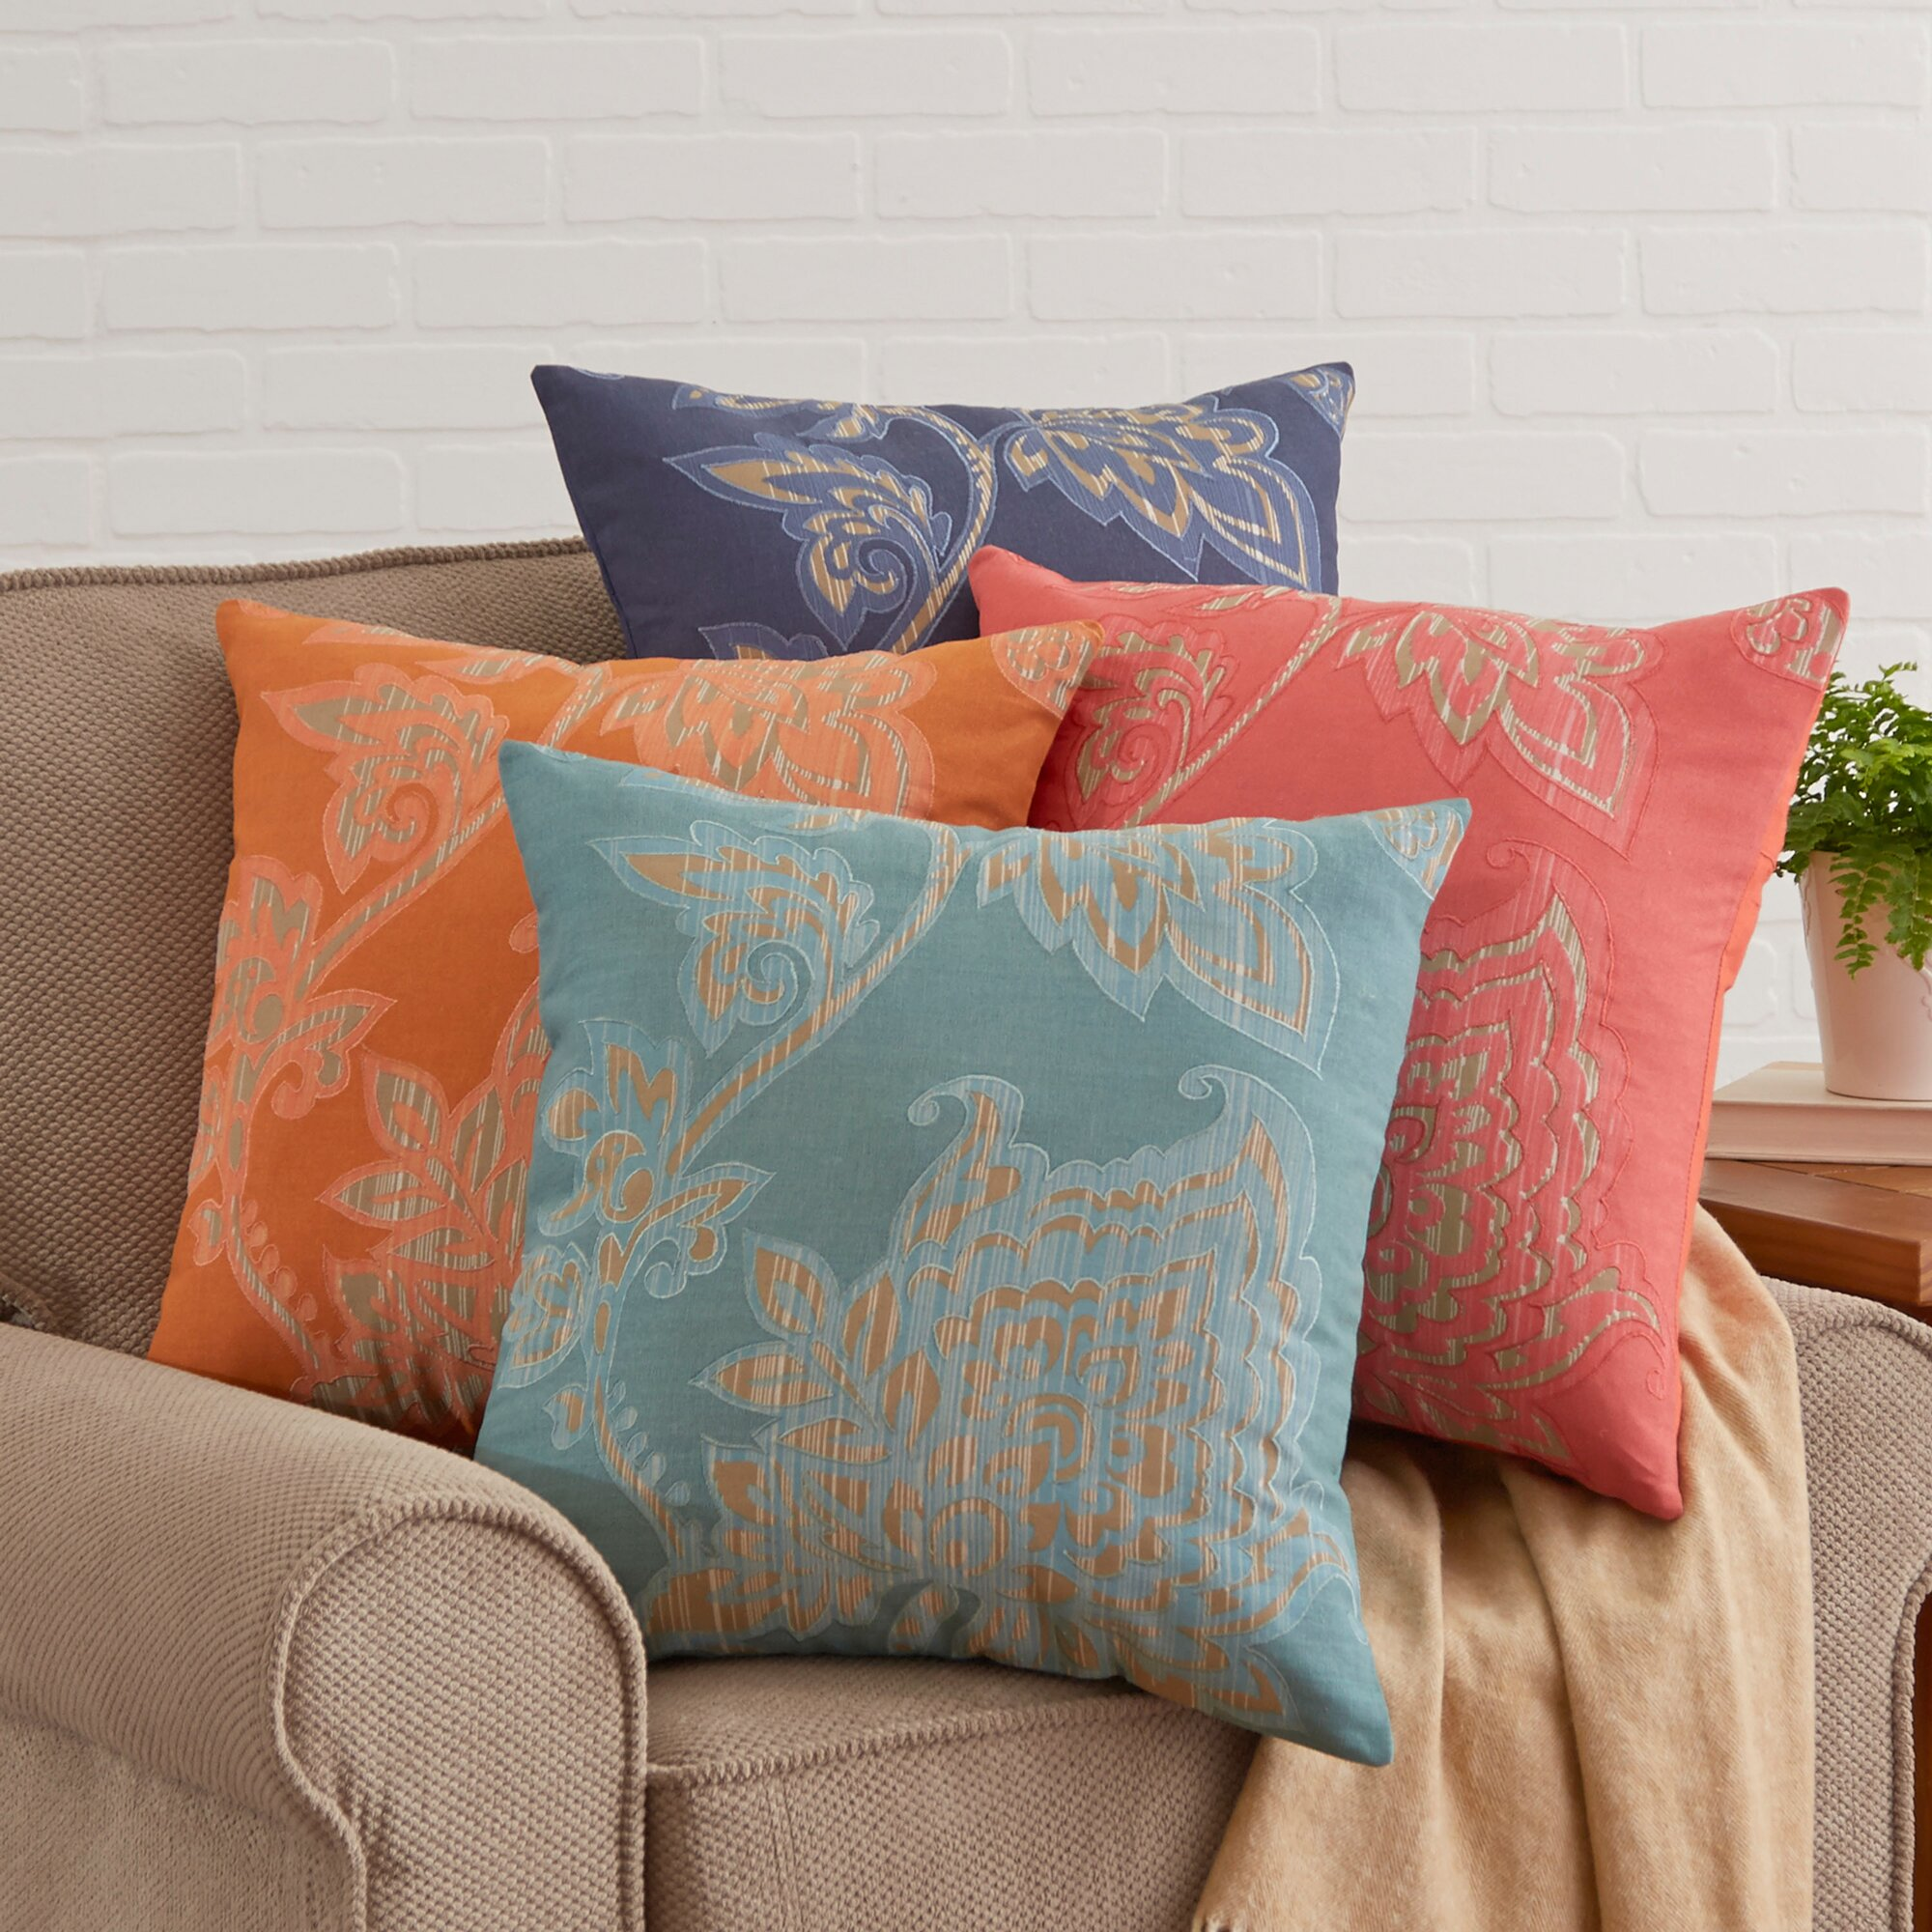 Wayfair Decorative Pillow Covers : Birch Lane Penelope Pillow Cover & Reviews Wayfair